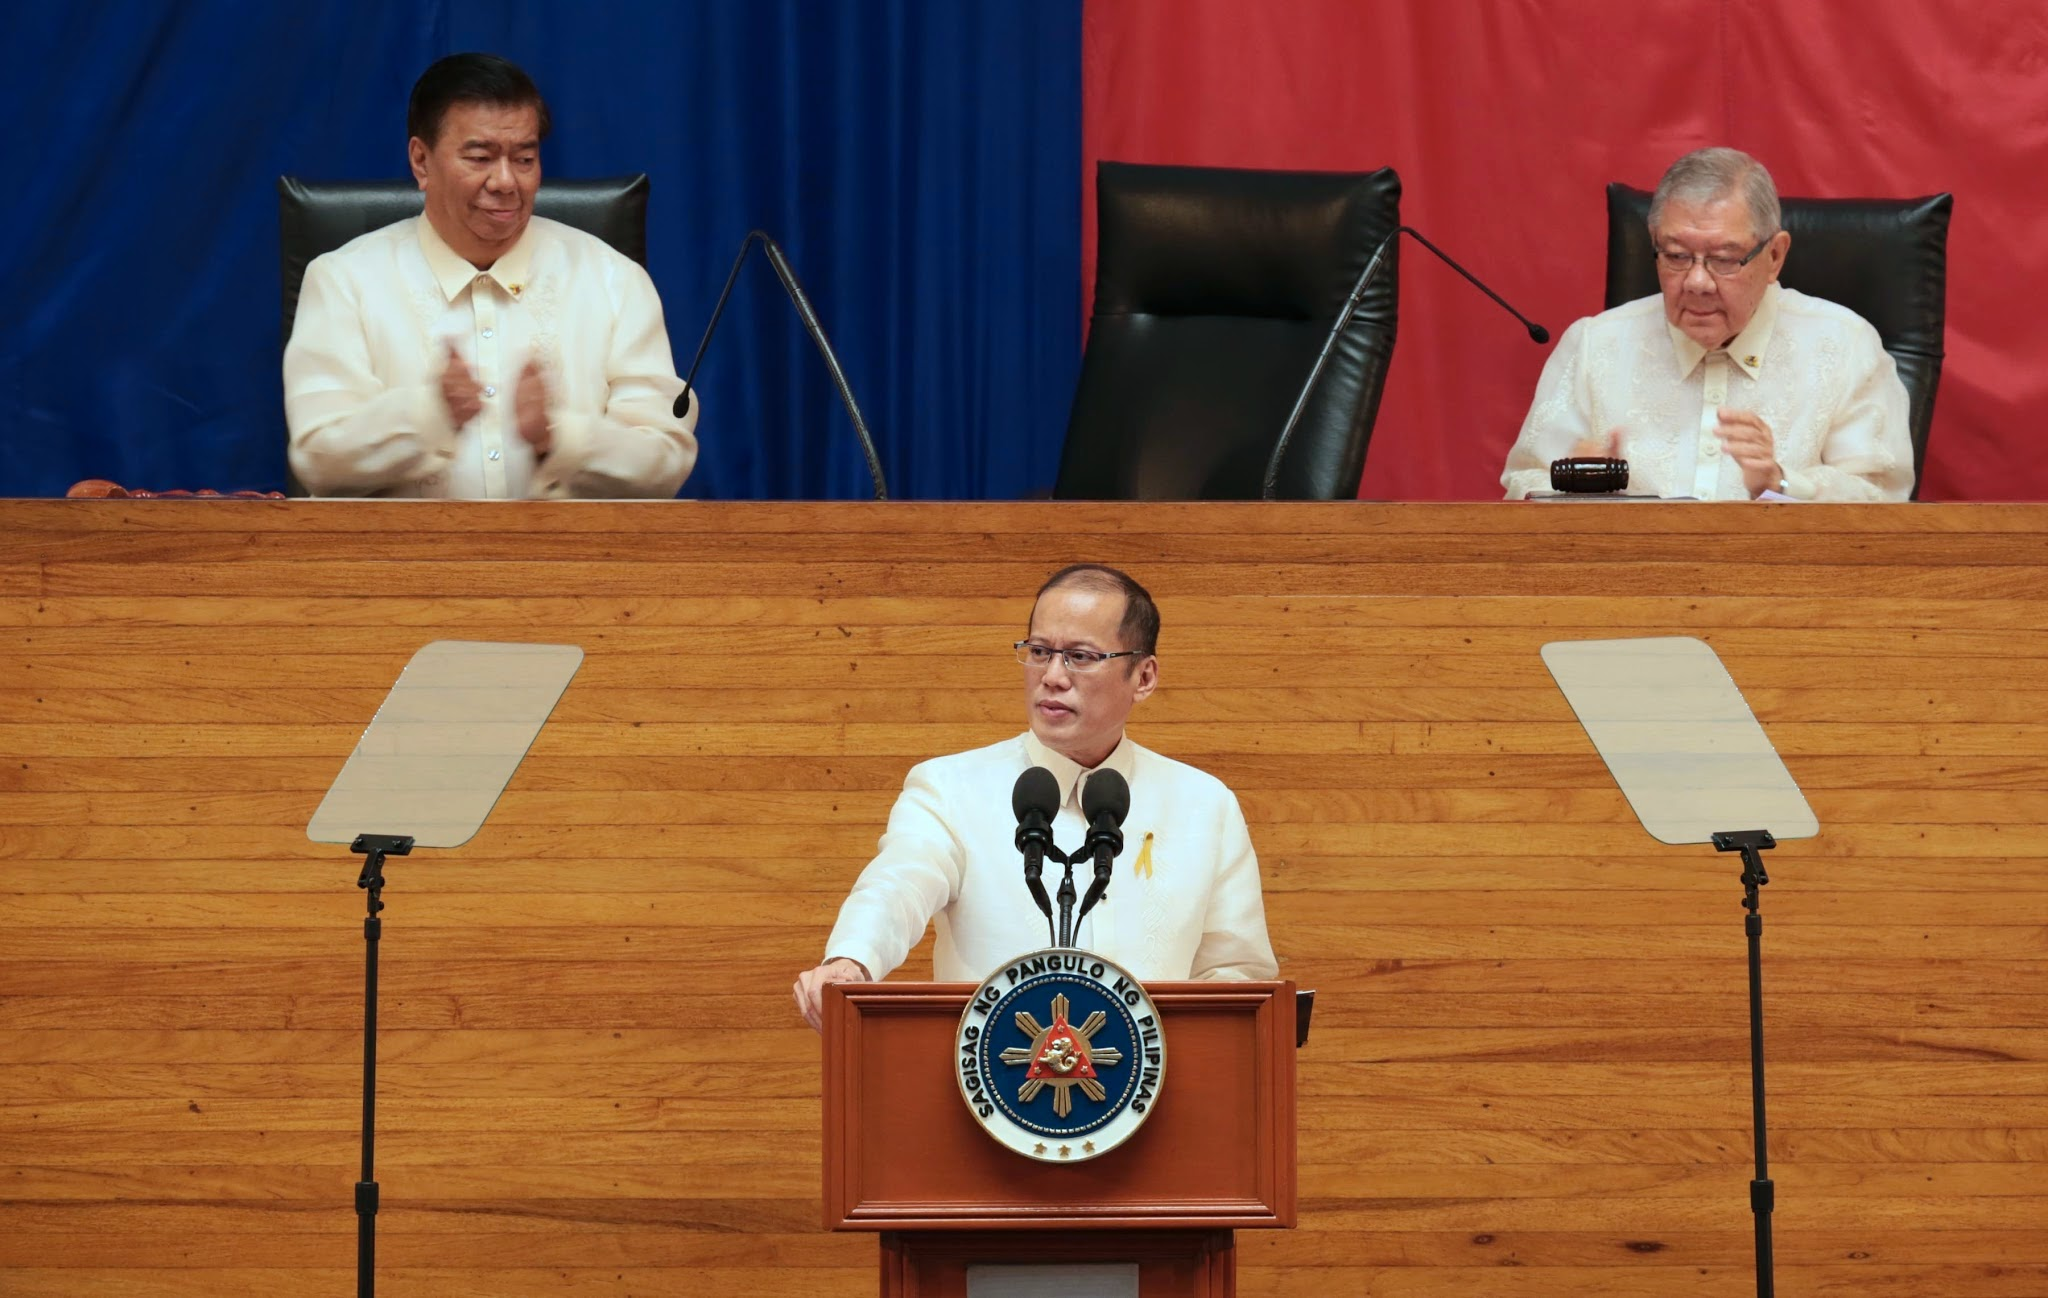 President Benigno S. Aquino III delivers his 5th State of the Nation Address (SONA) during the Joint Session of the 16th Congress at the Batasang Pambansa in Quezon City on Monday (July 28). (Photo by Ryan Lim / Benhur Arcayan/ Malacanang Photo Bureau)